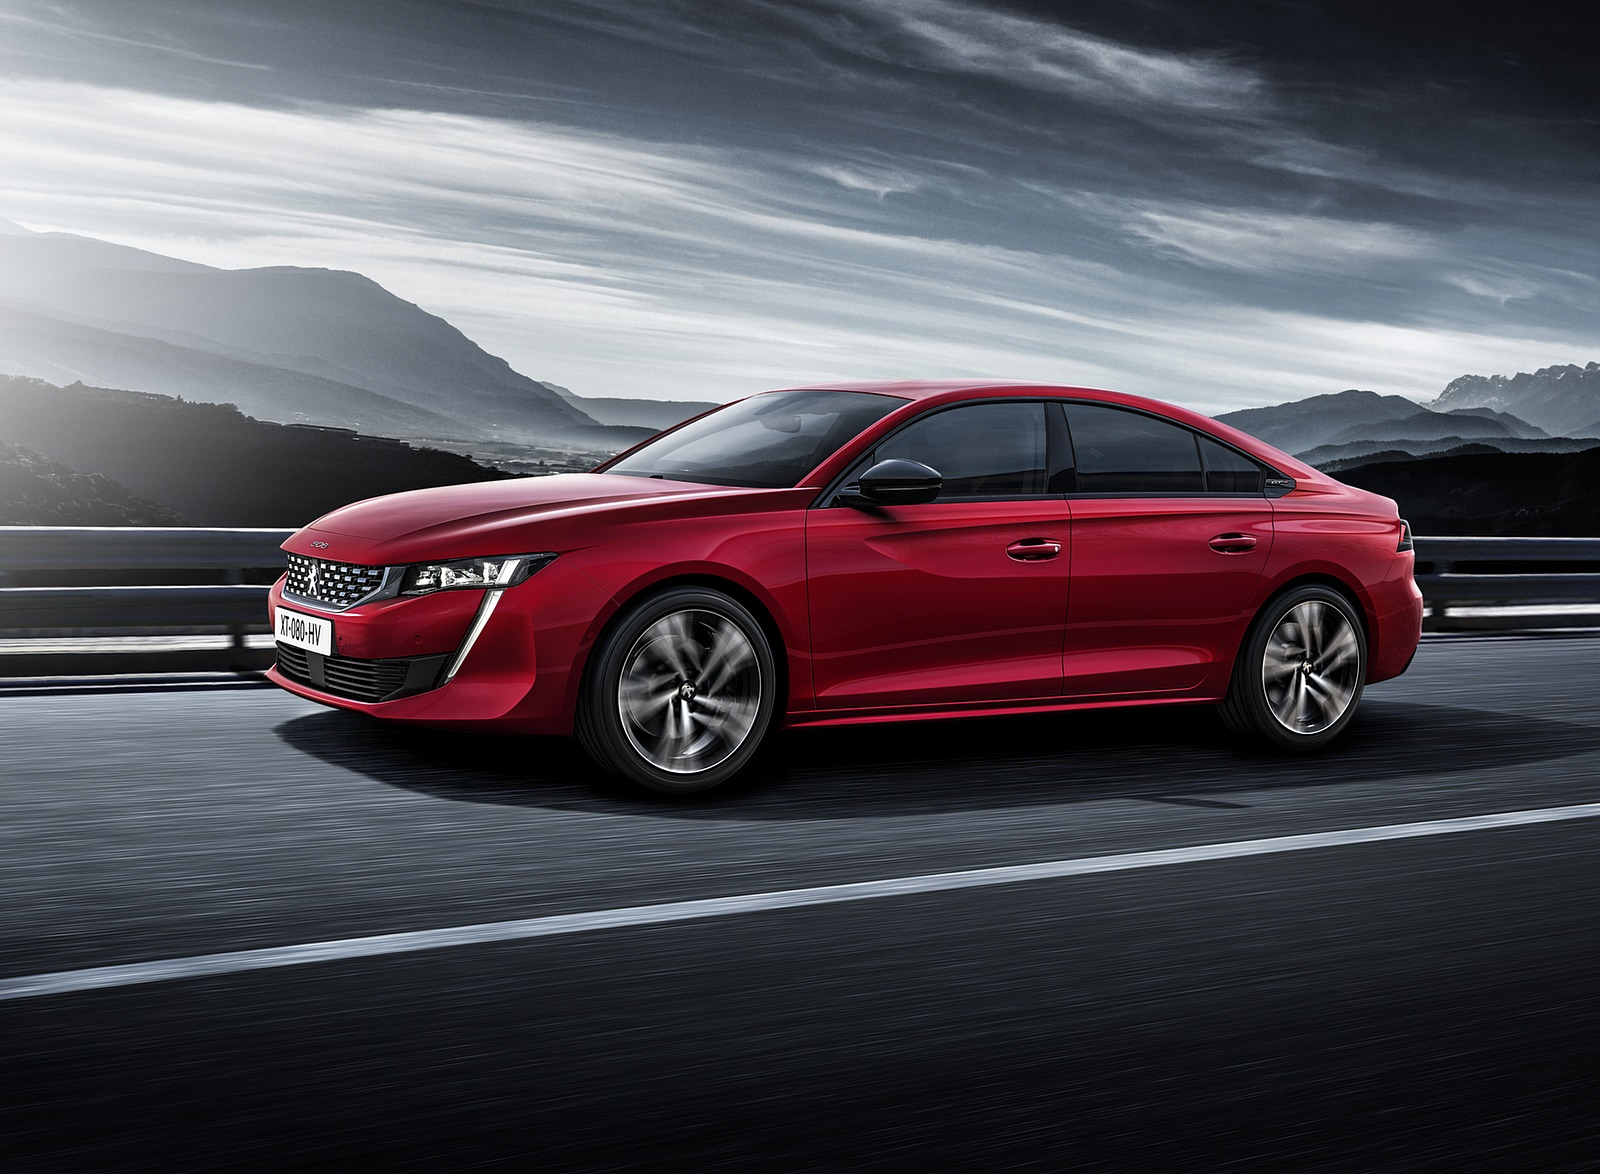 2019 Peugeot 508 Side Wallpapers (2)